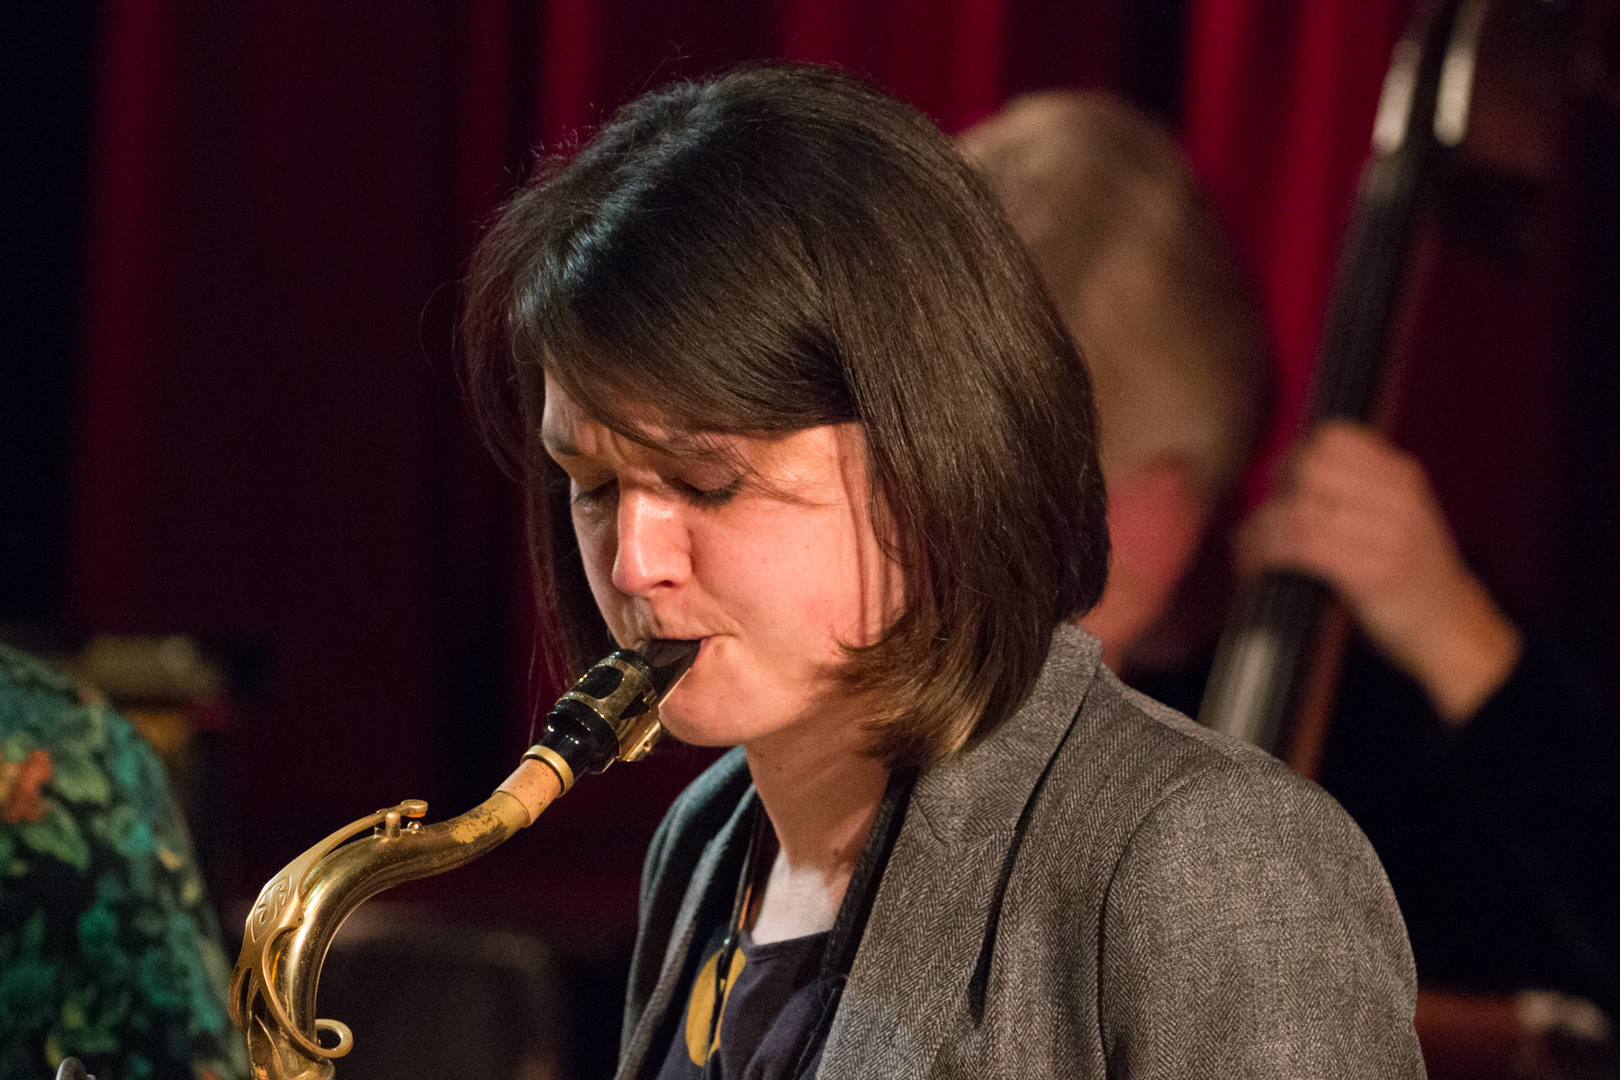 Trish Clowes performing in the Nikki Iles All Star Septet at Fleet Jazz on 19th Feb 2019